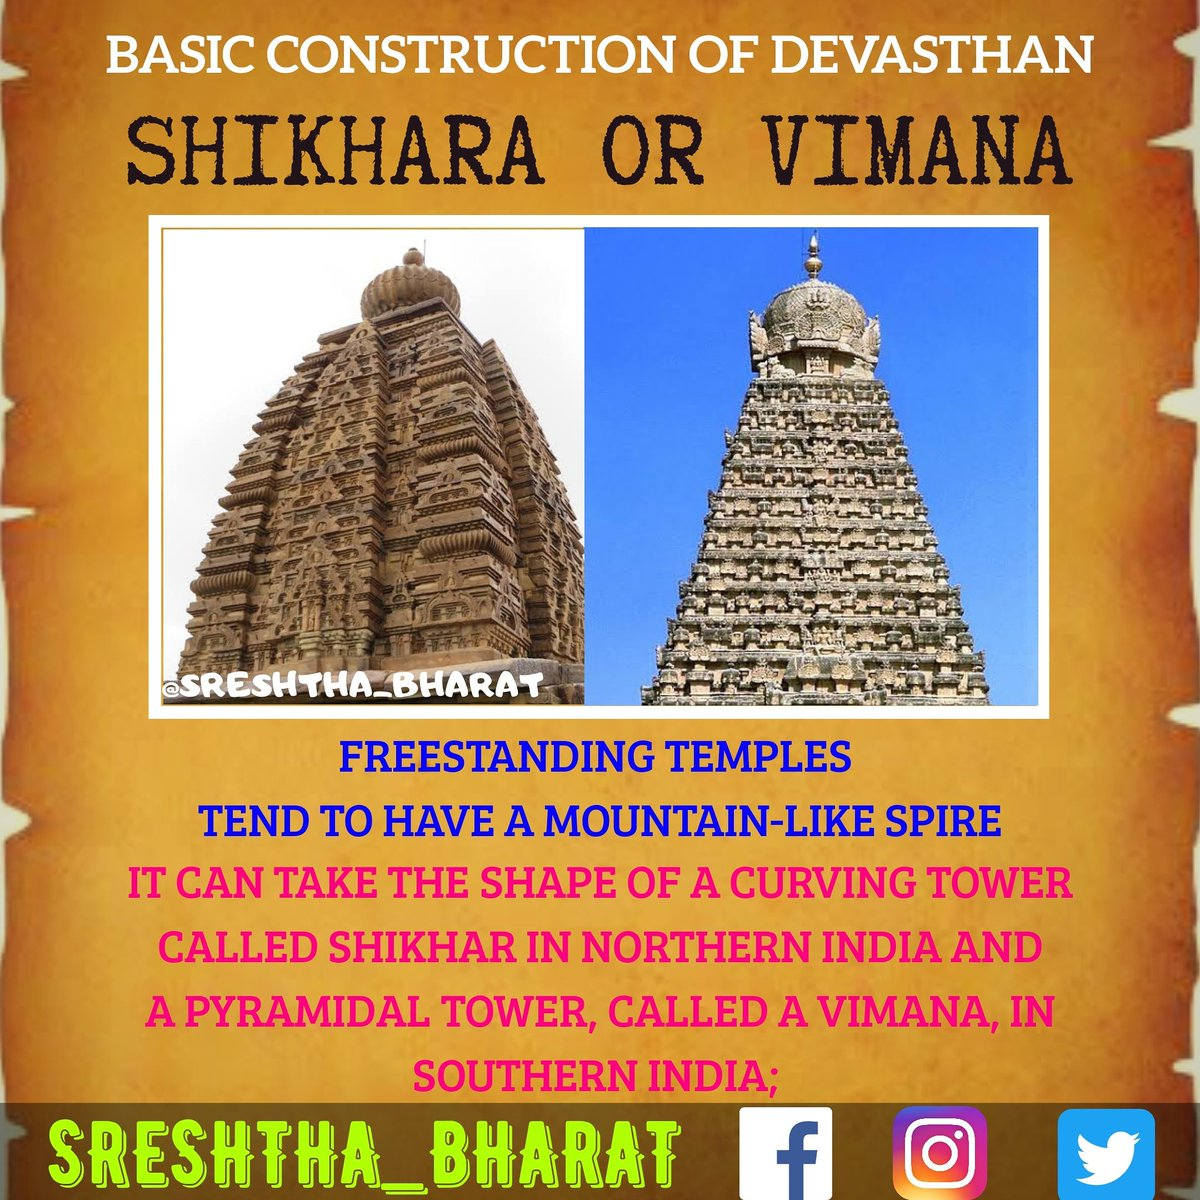 #temple_architecture  We will be getting closer to the Great Temple Architecture of our Sreshtha Bharat  Follow @Sreshthabharat on Facebook | Instagram | Twitter 🙏  #indianculture #indianarchitecture #hinduarchitecture #temple  #worship #templeworship #dravida #mandir #devasthan https://t.co/Jim7G7m93S